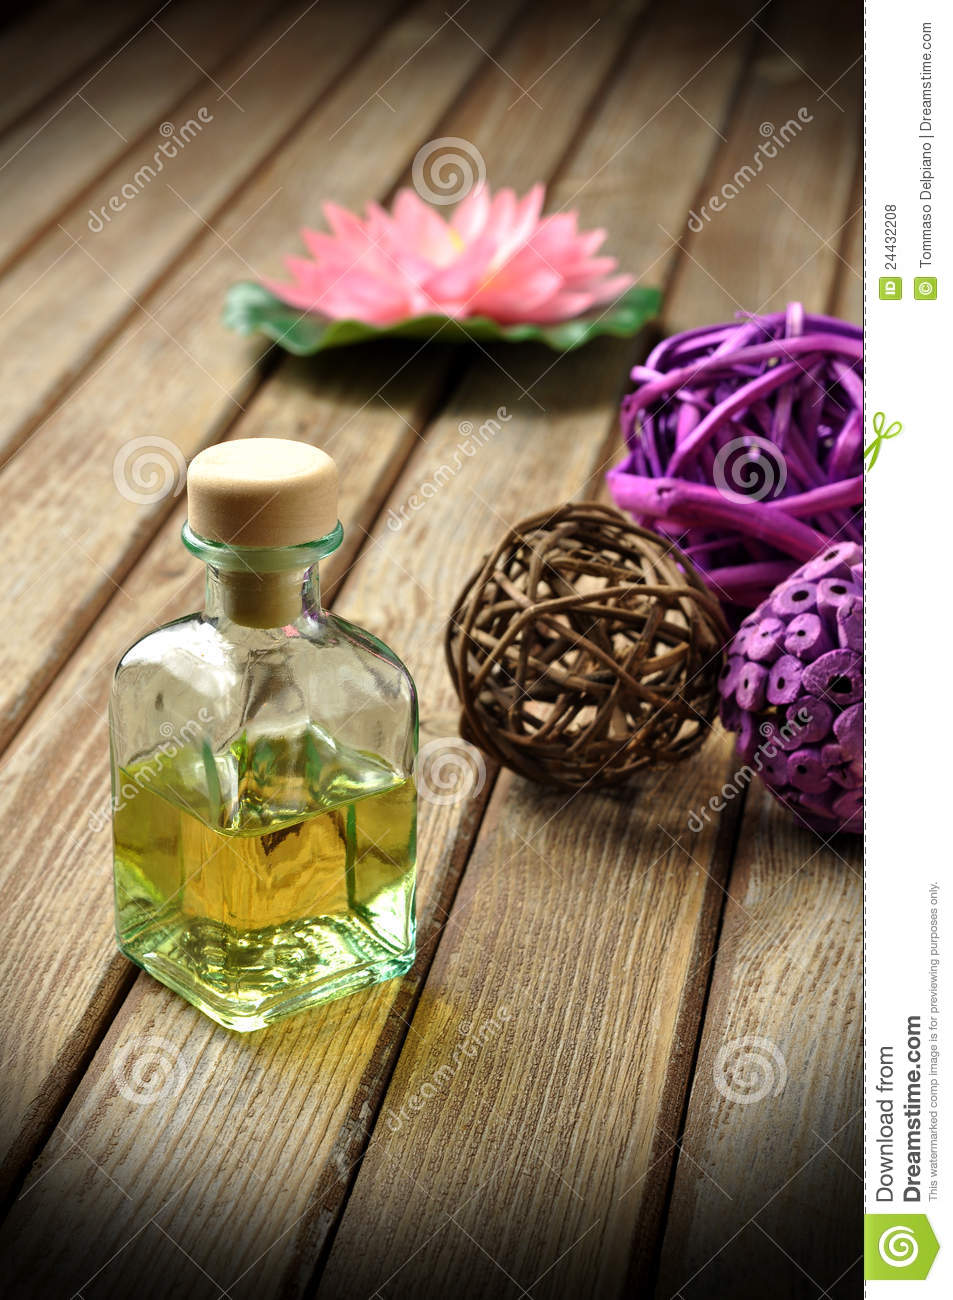 Fresh fragrance stock photo image of lotus smell spring 24432208 fragrances in composition with blurry lotus flower in the background izmirmasajfo